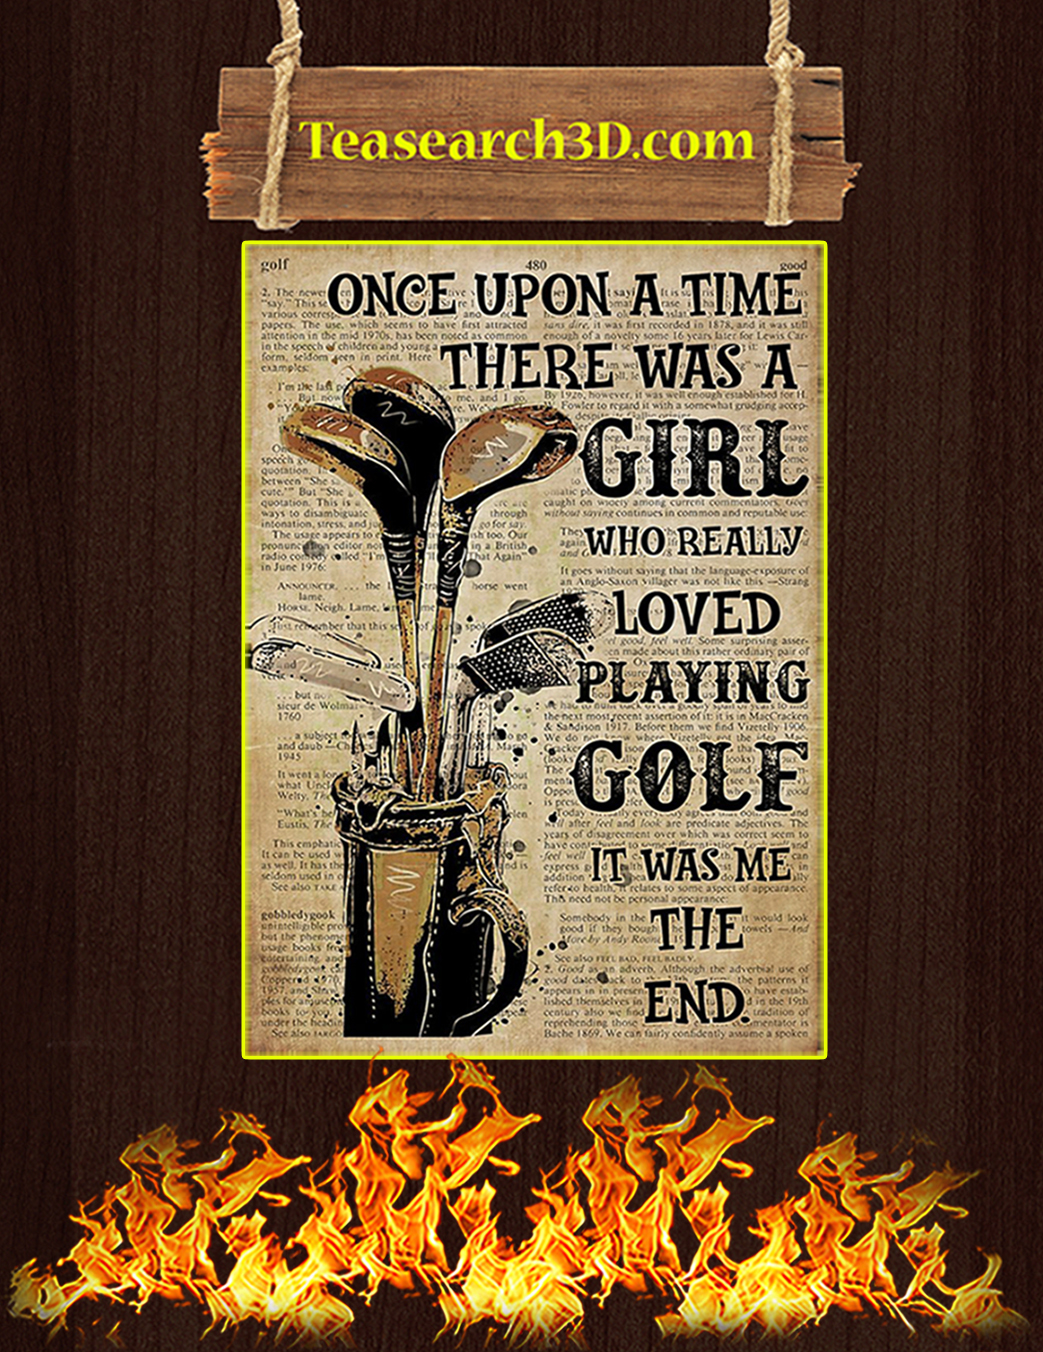 Once upon a time there was a girl who really loved playing gofl poster A1